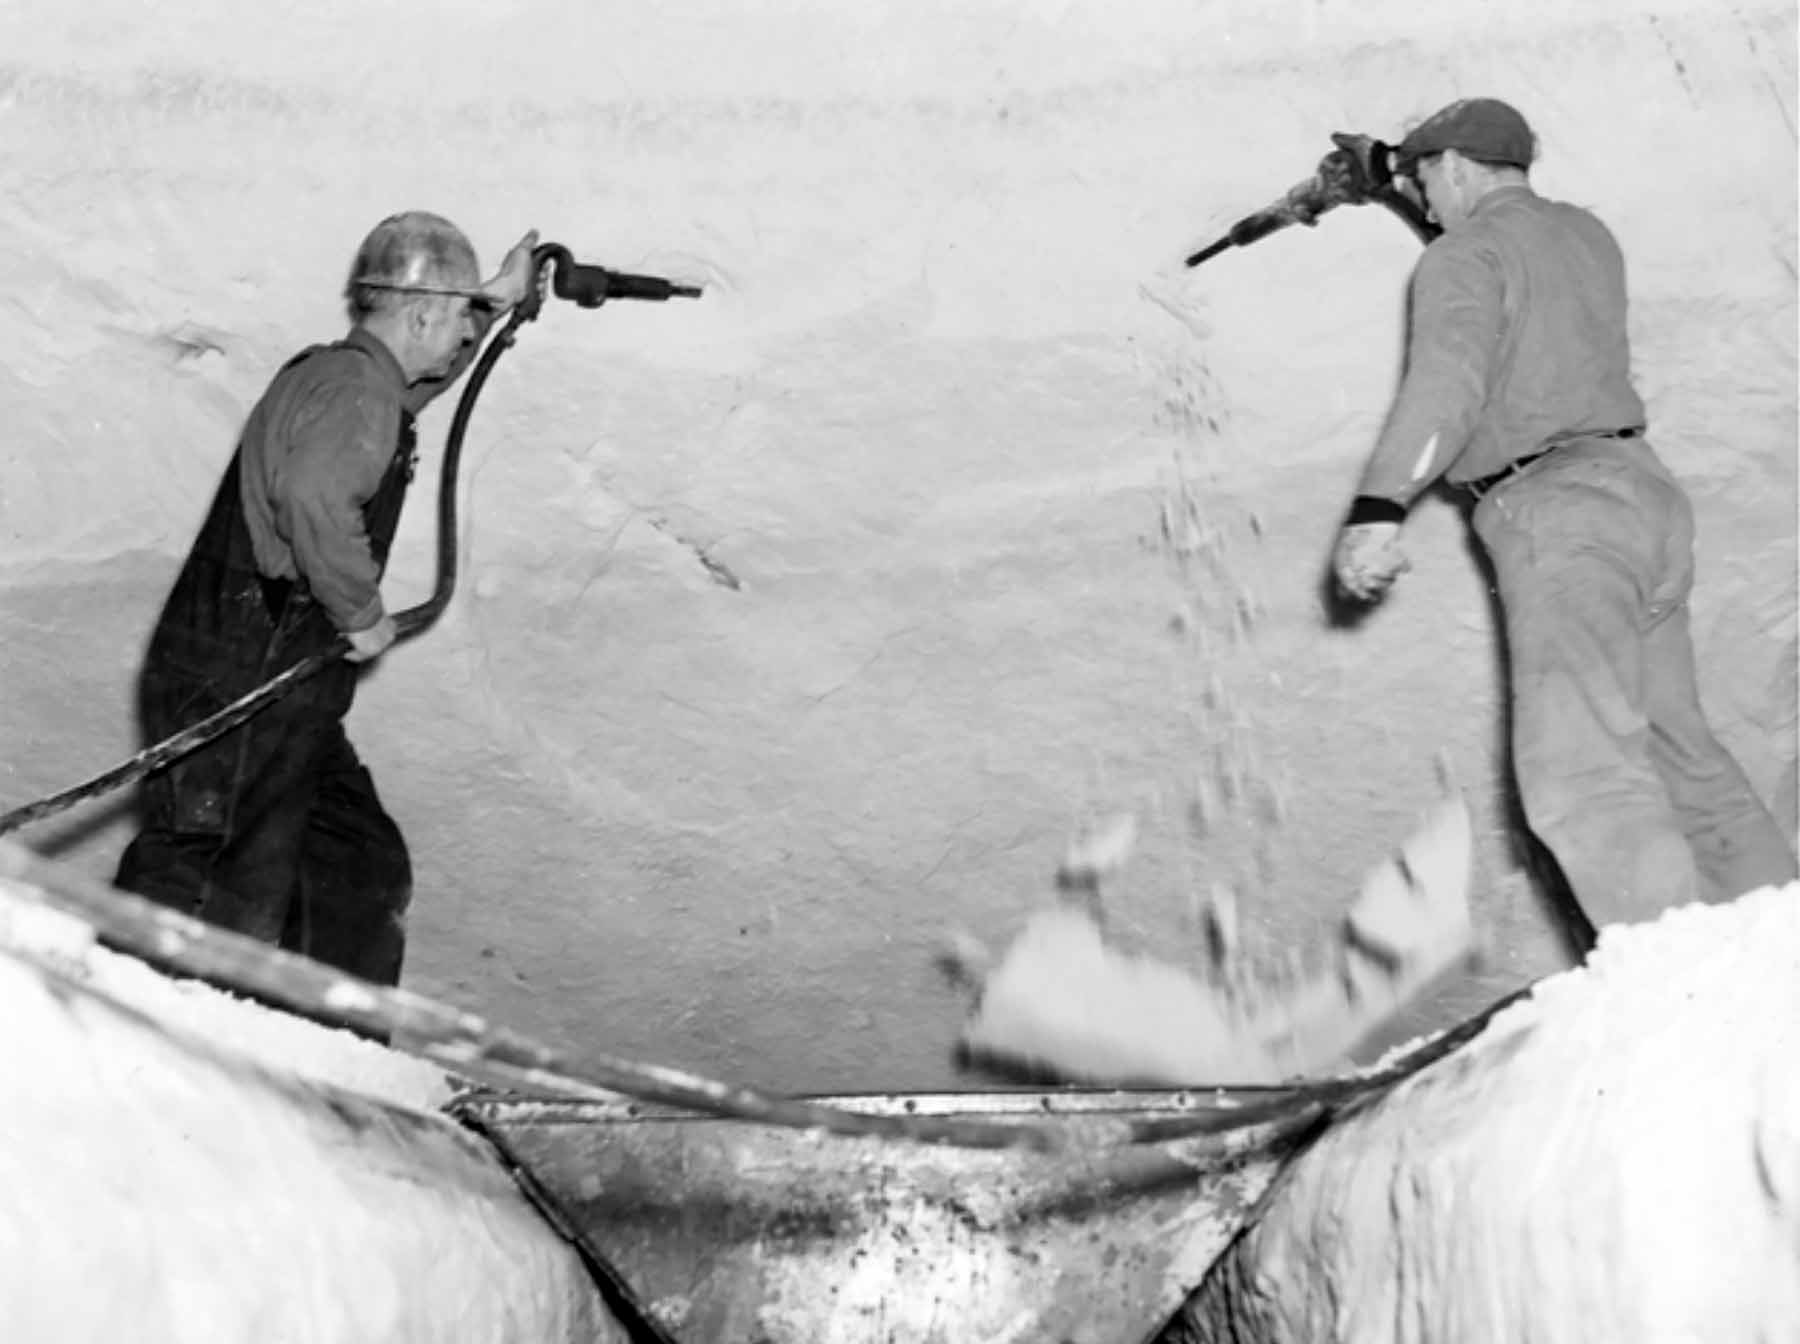 Workers mine silica sand in the tunnels beneath the Ford plant in St. Paul in this 1930s photo.